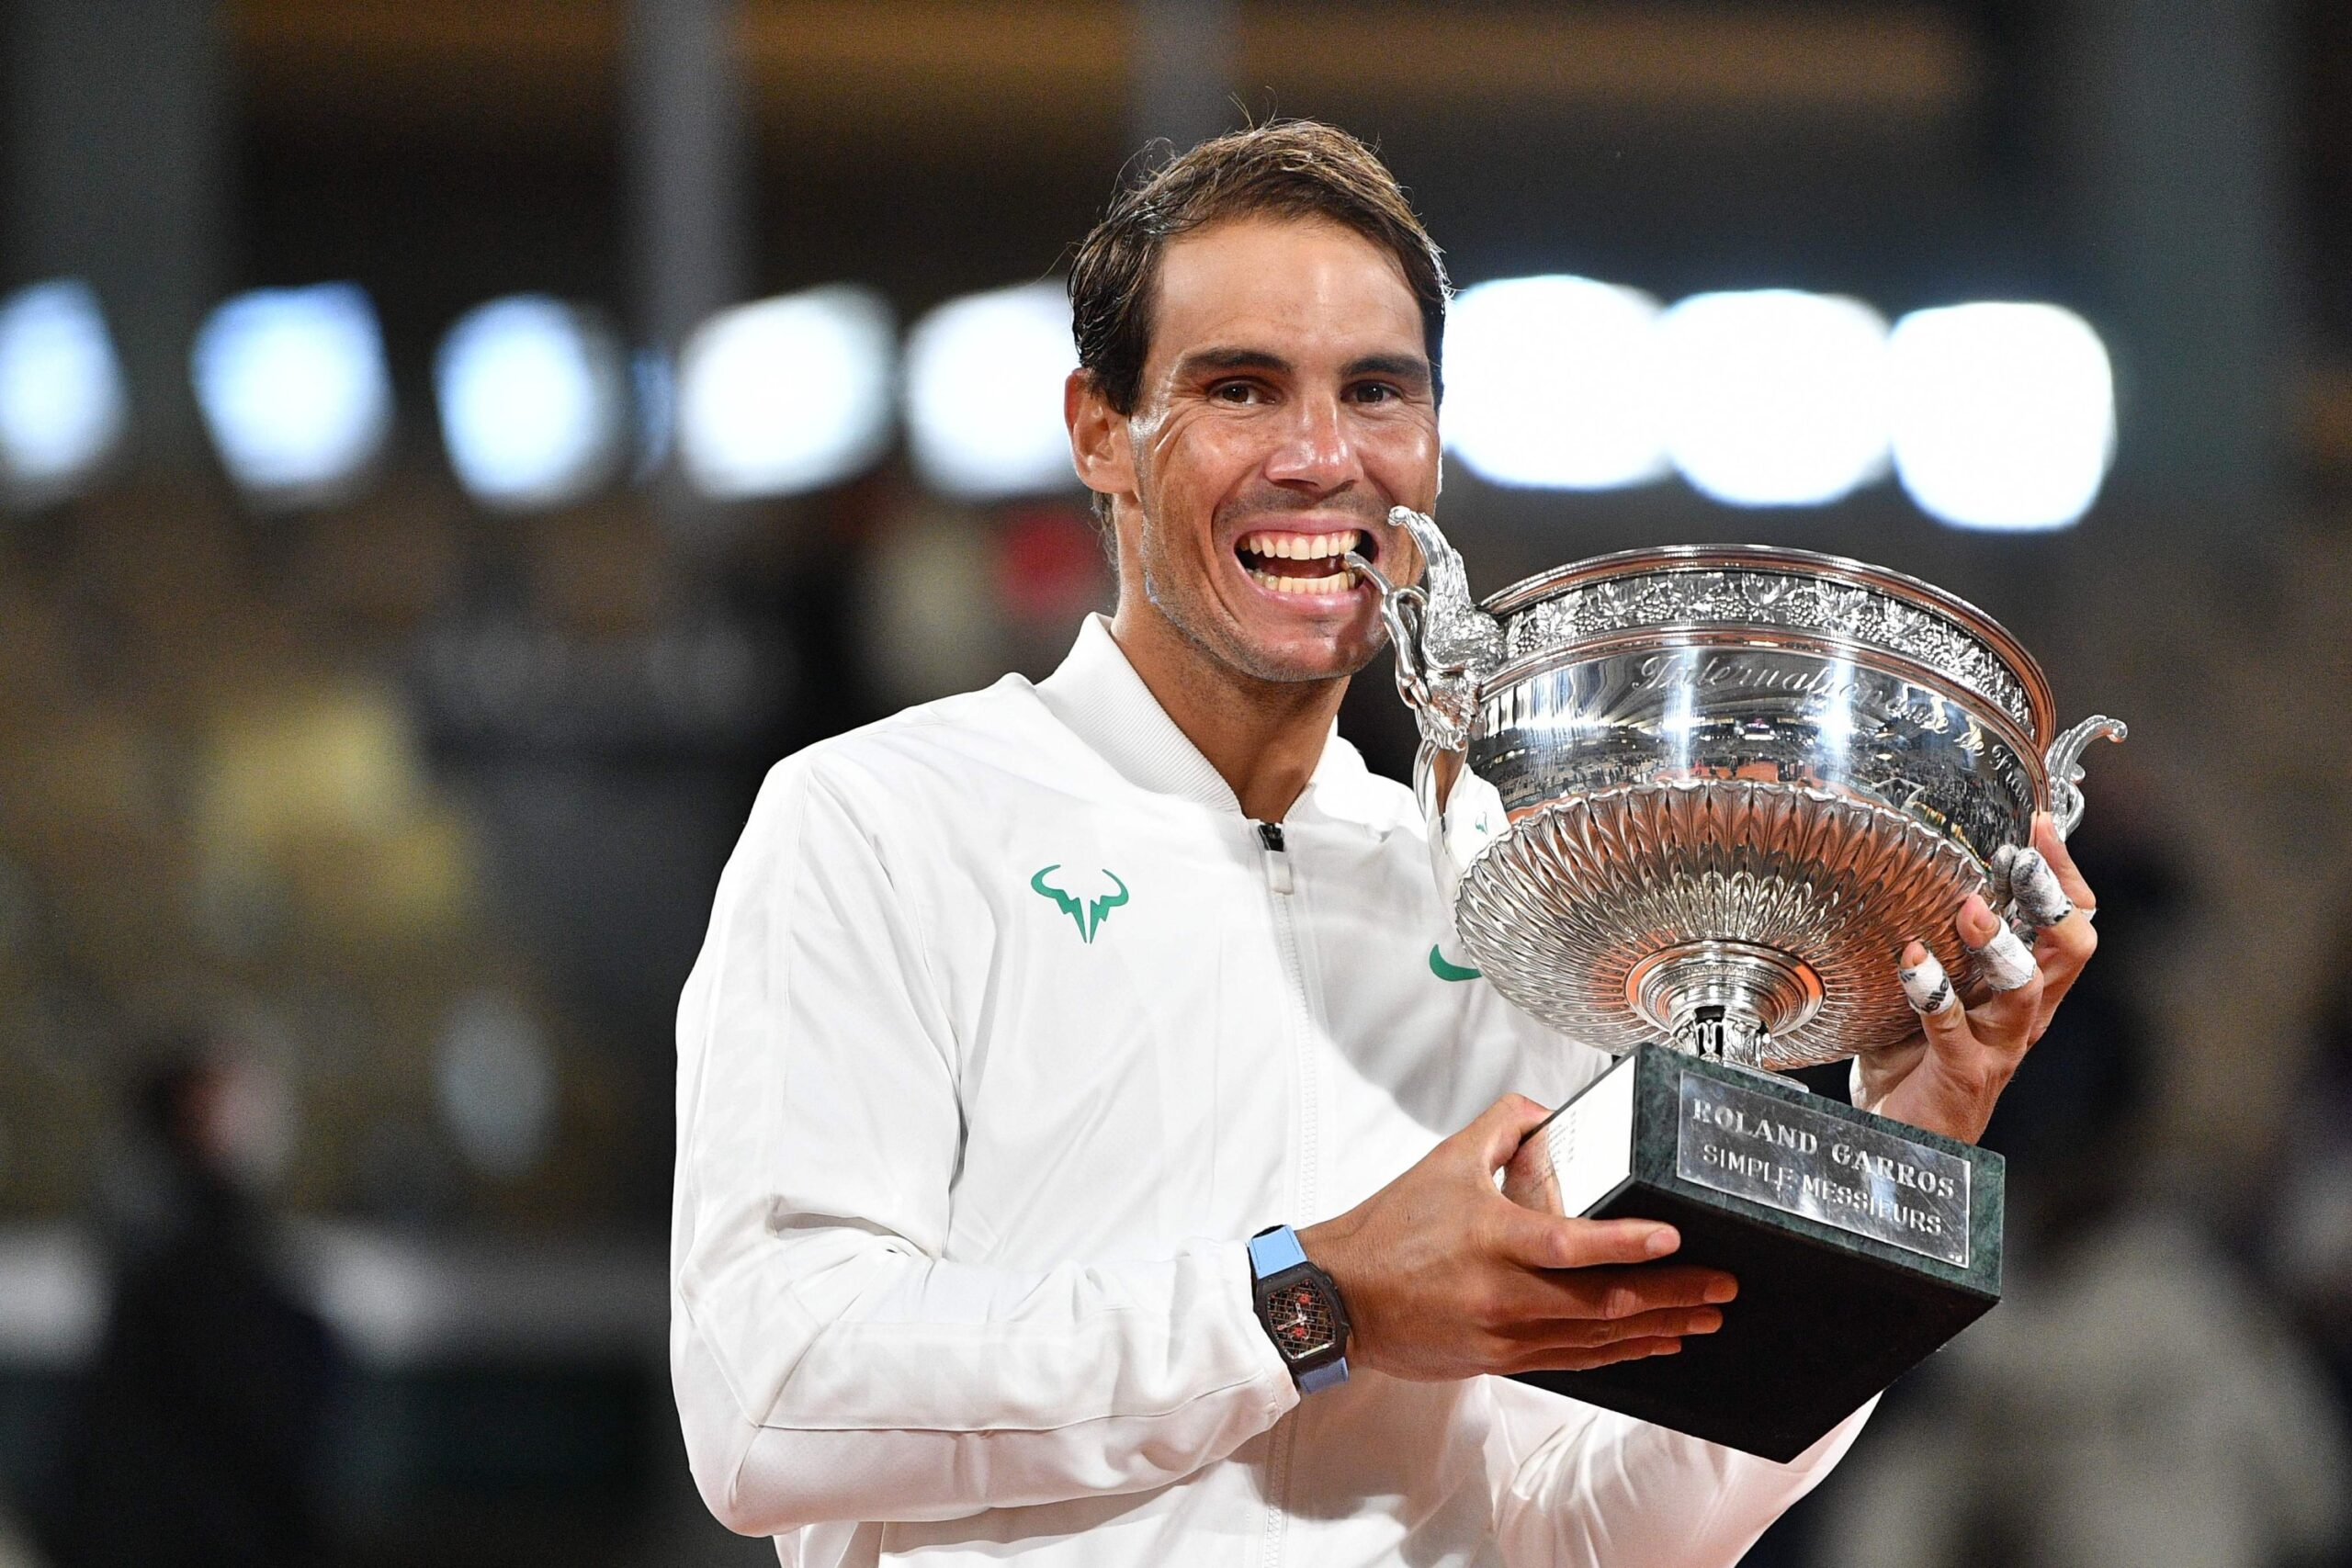 Rafael Nadal is now arguably the greatest of all time in the tennis world after equaling the 20 Grand Slam Men's singles titles of Roger Federer.